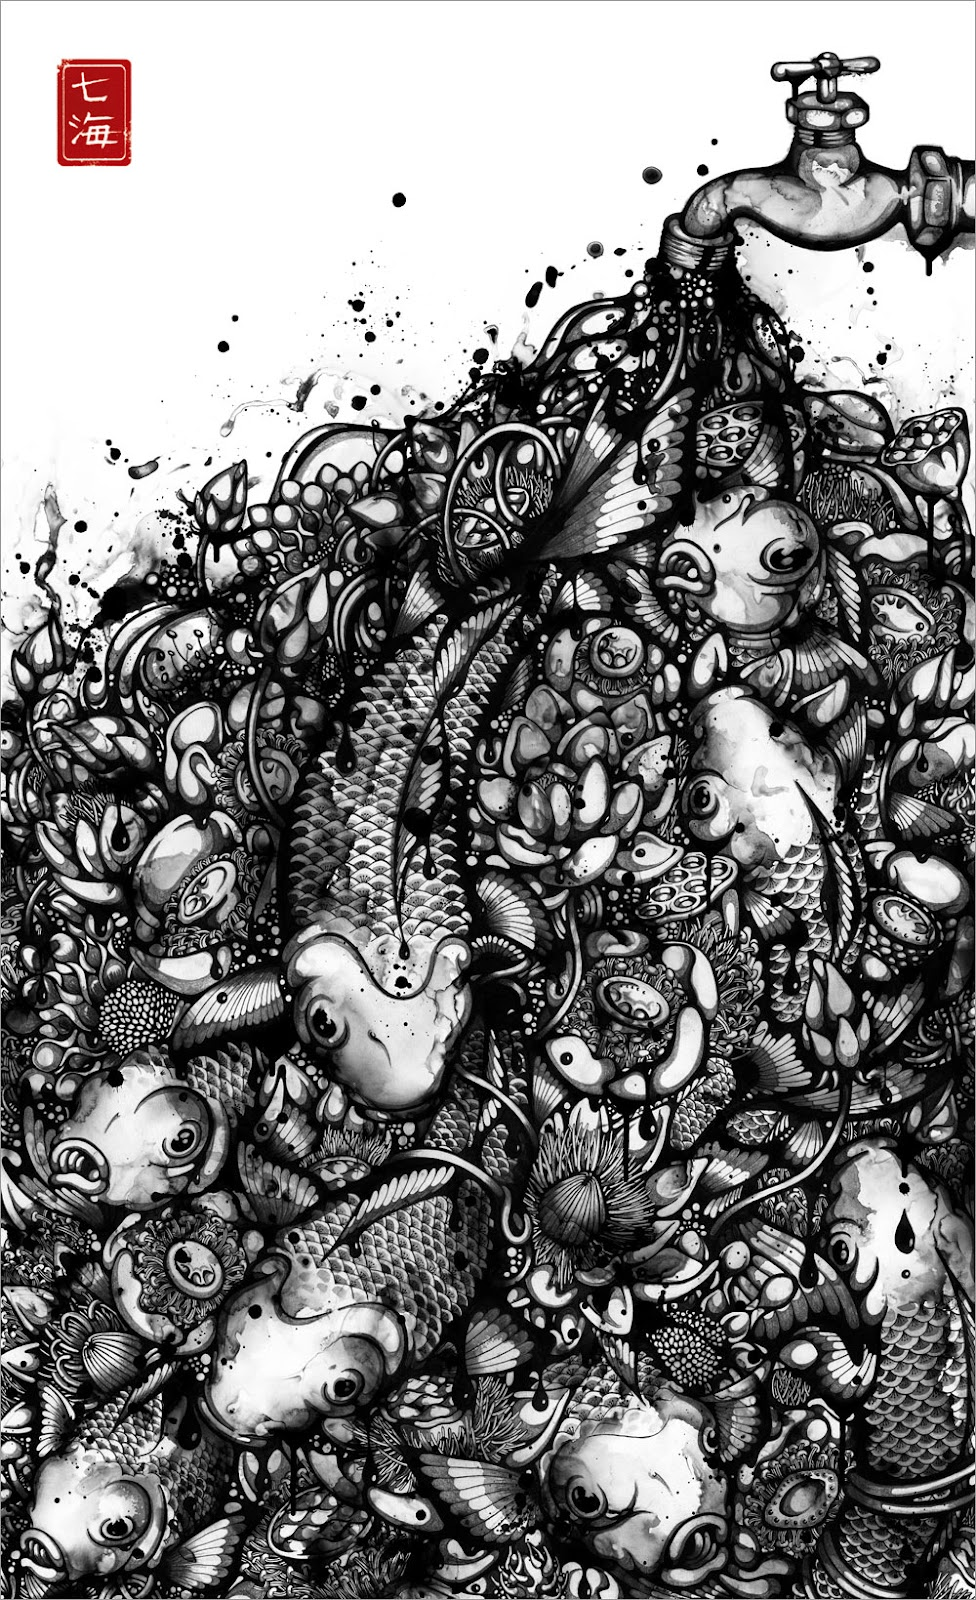 10-Over-Flow-Nanami-Cowdroy-Splashes-of-Ink-Drawings-www-designstack-co